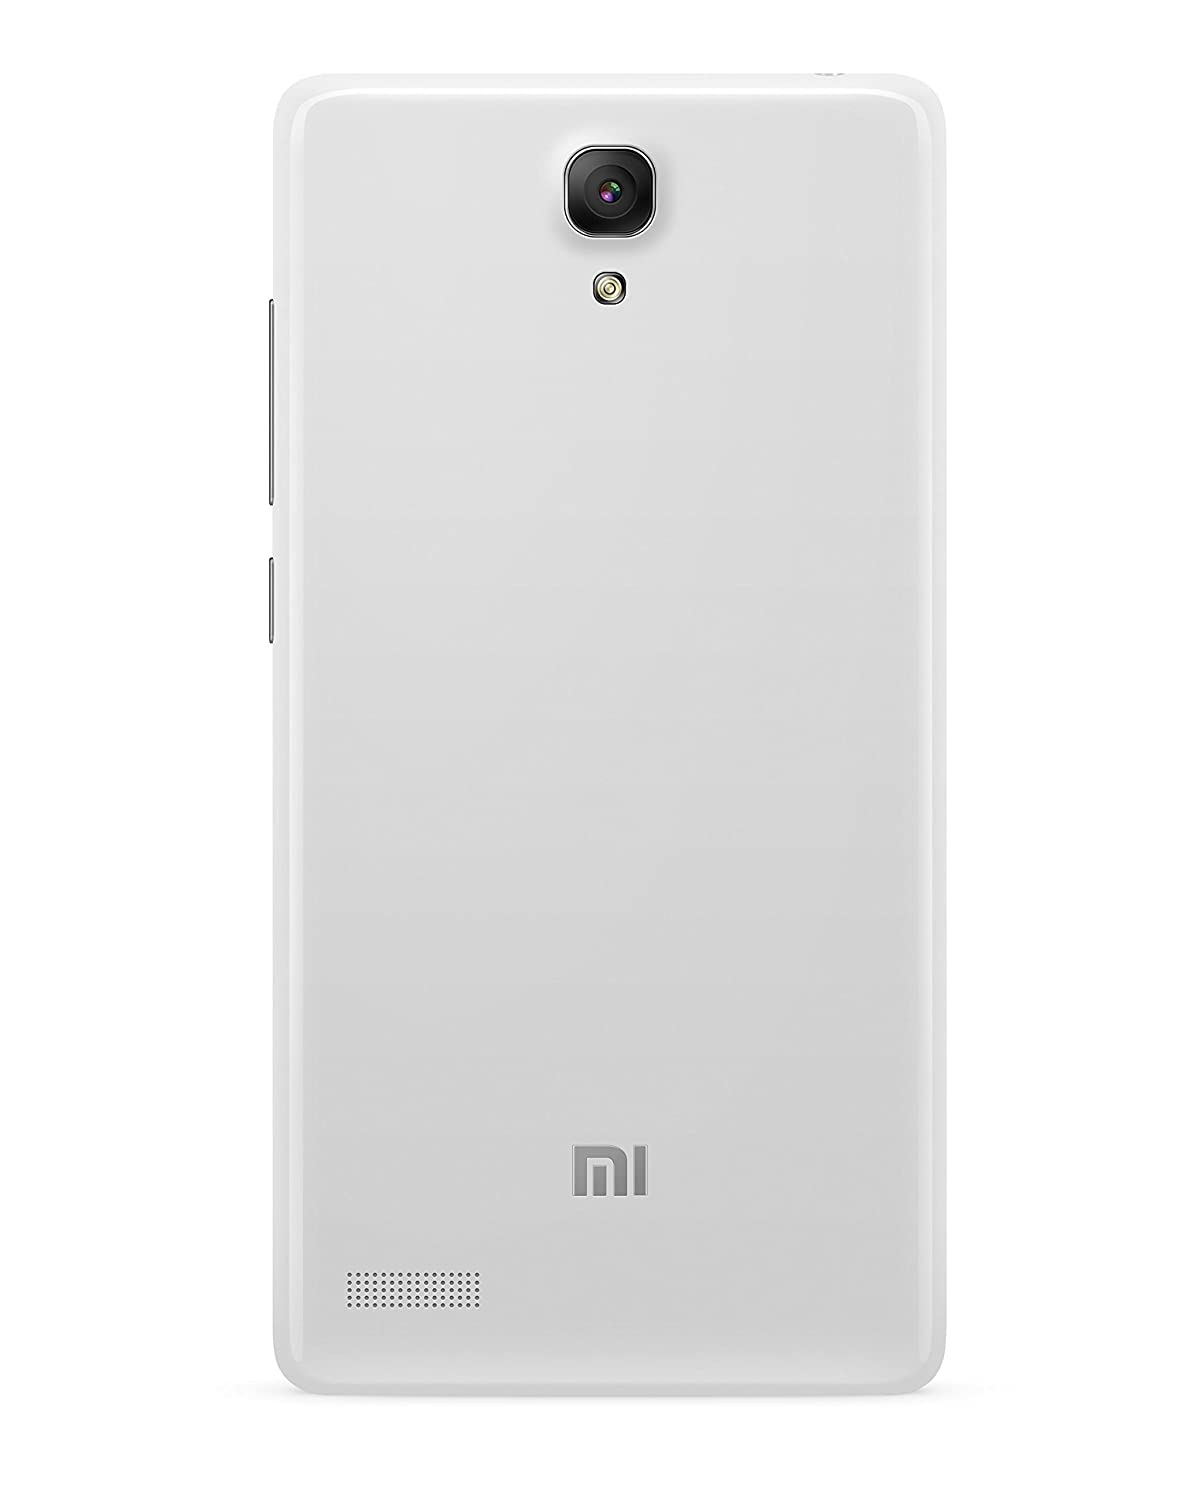 Xiaomi Redmi Note 4G (White, 8GB)